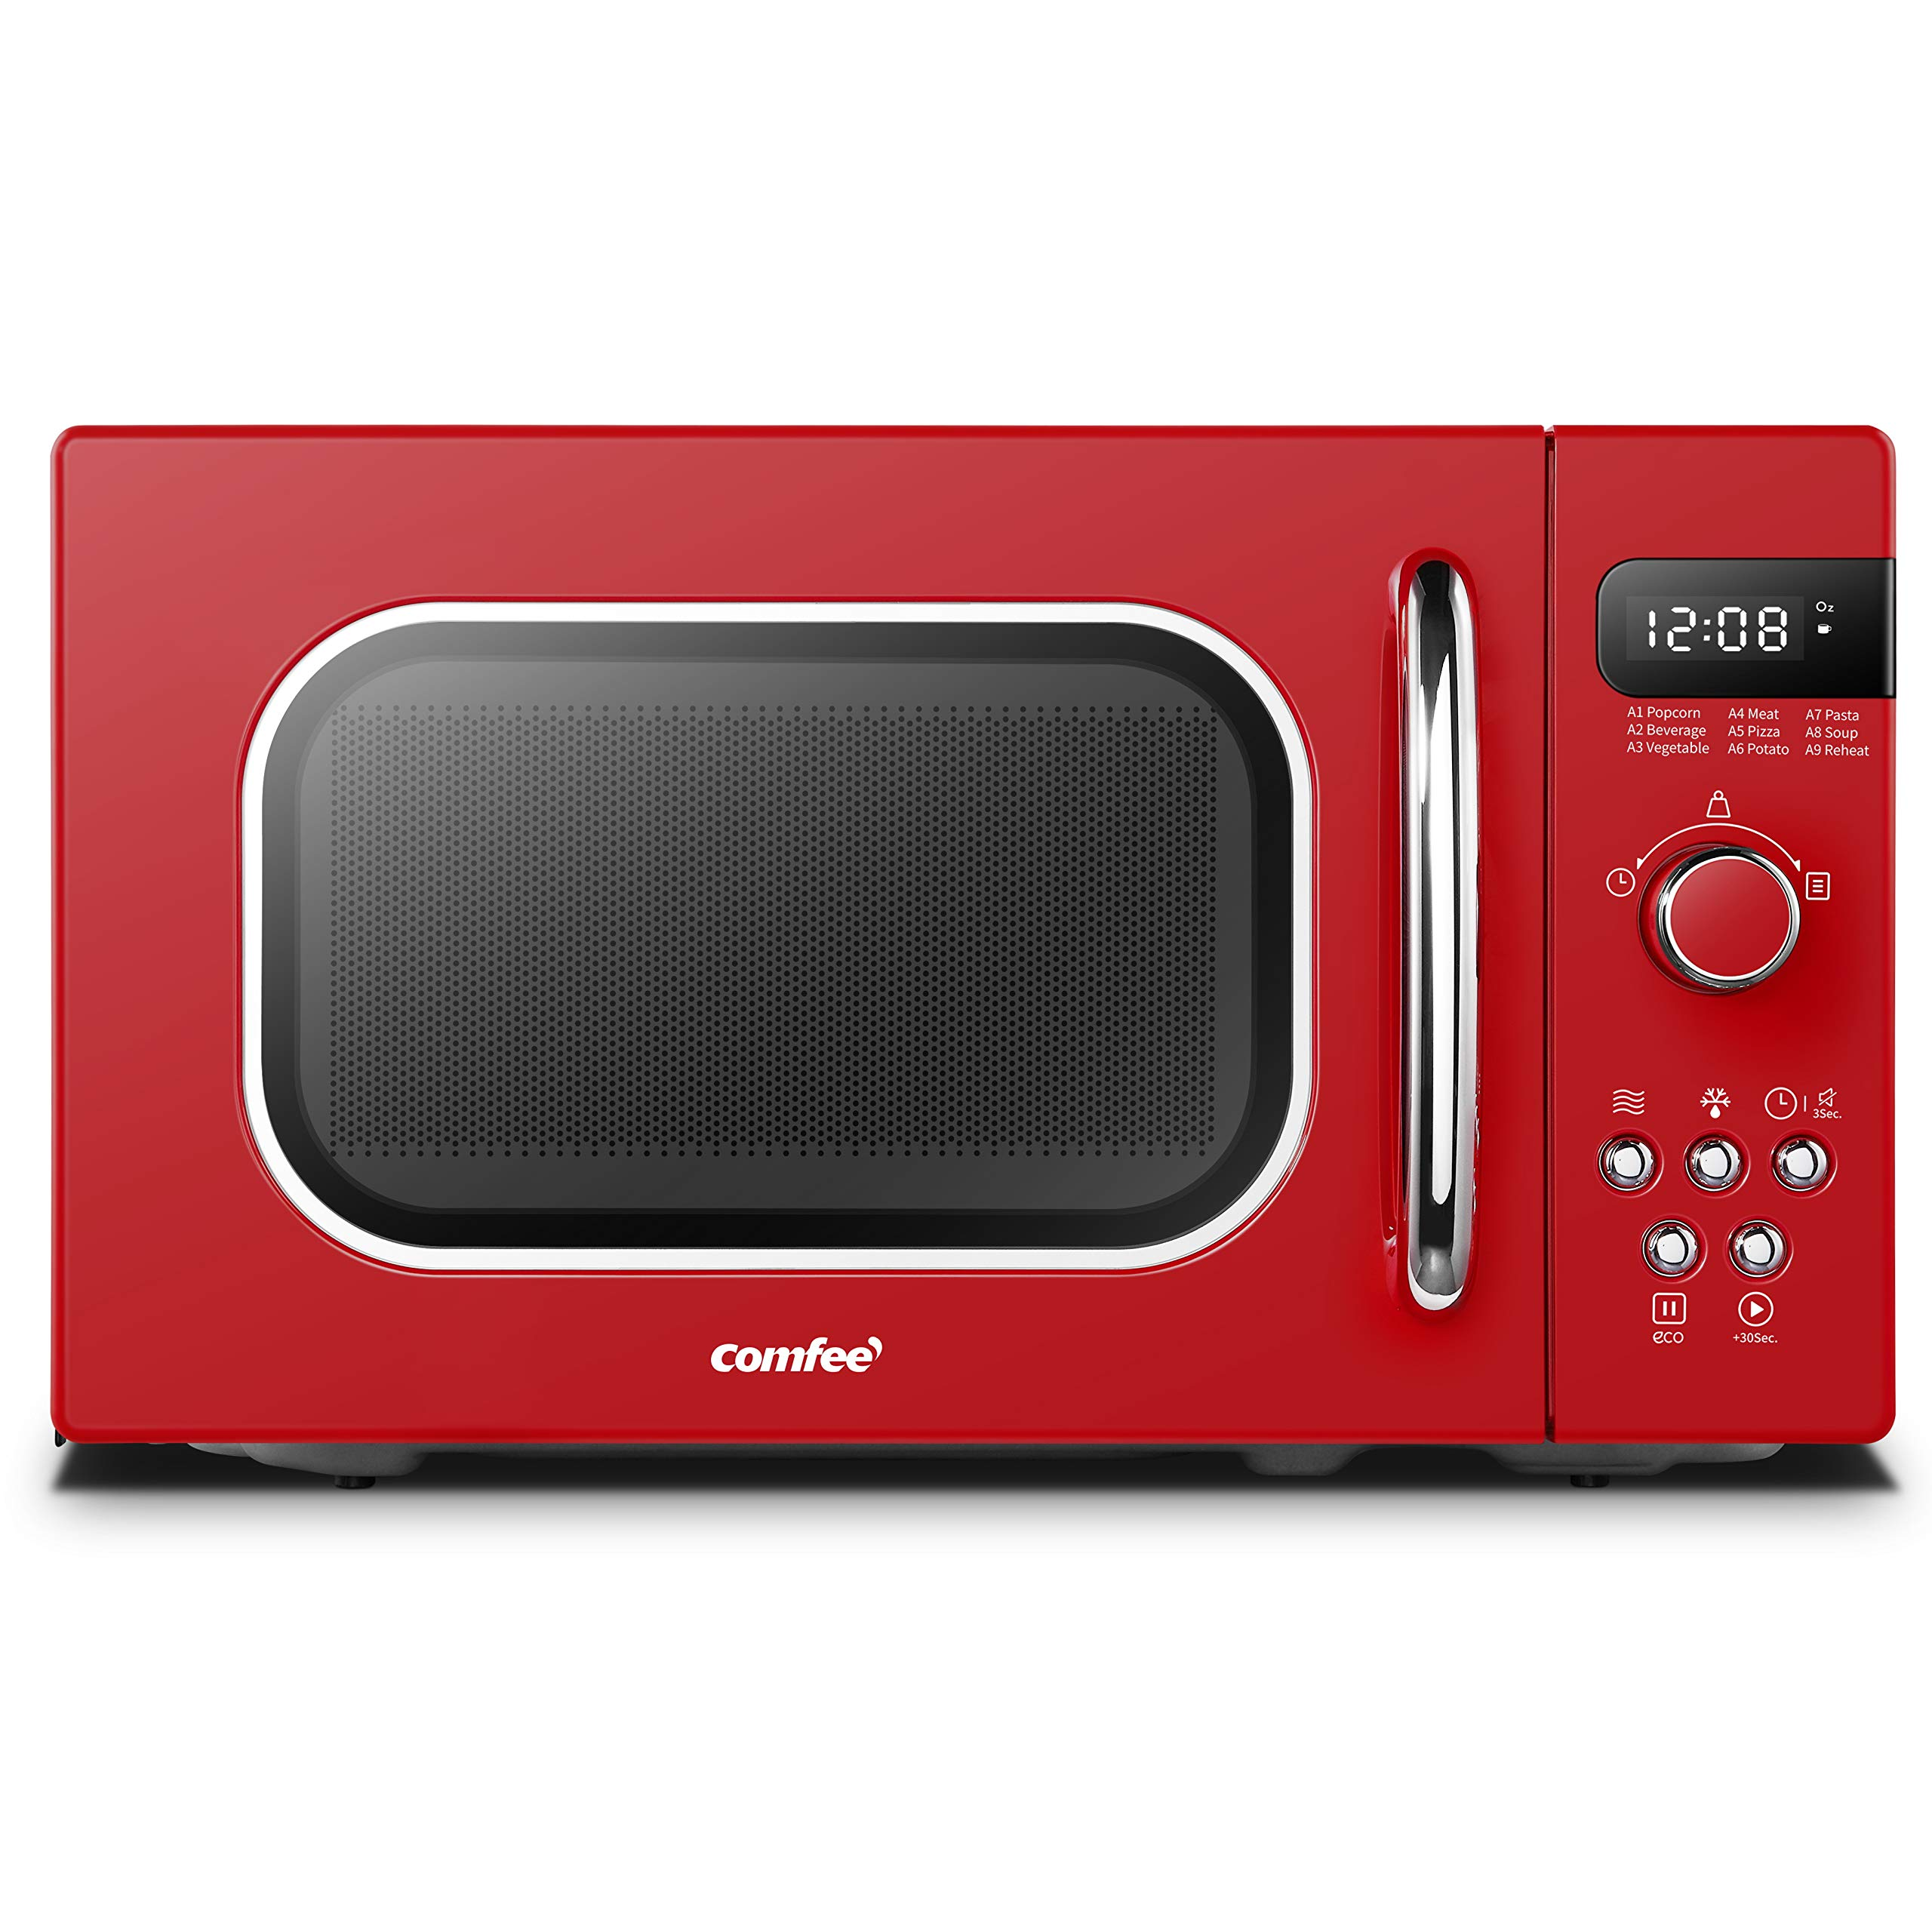 COMFEE' AM720C2RA-R Retro Style Countertop Microwave Oven with 9 Auto Menus Position-Memory Turntable, Eco Mode, and Sound On/Off (Passionate Red),0.7Cu.Ft,